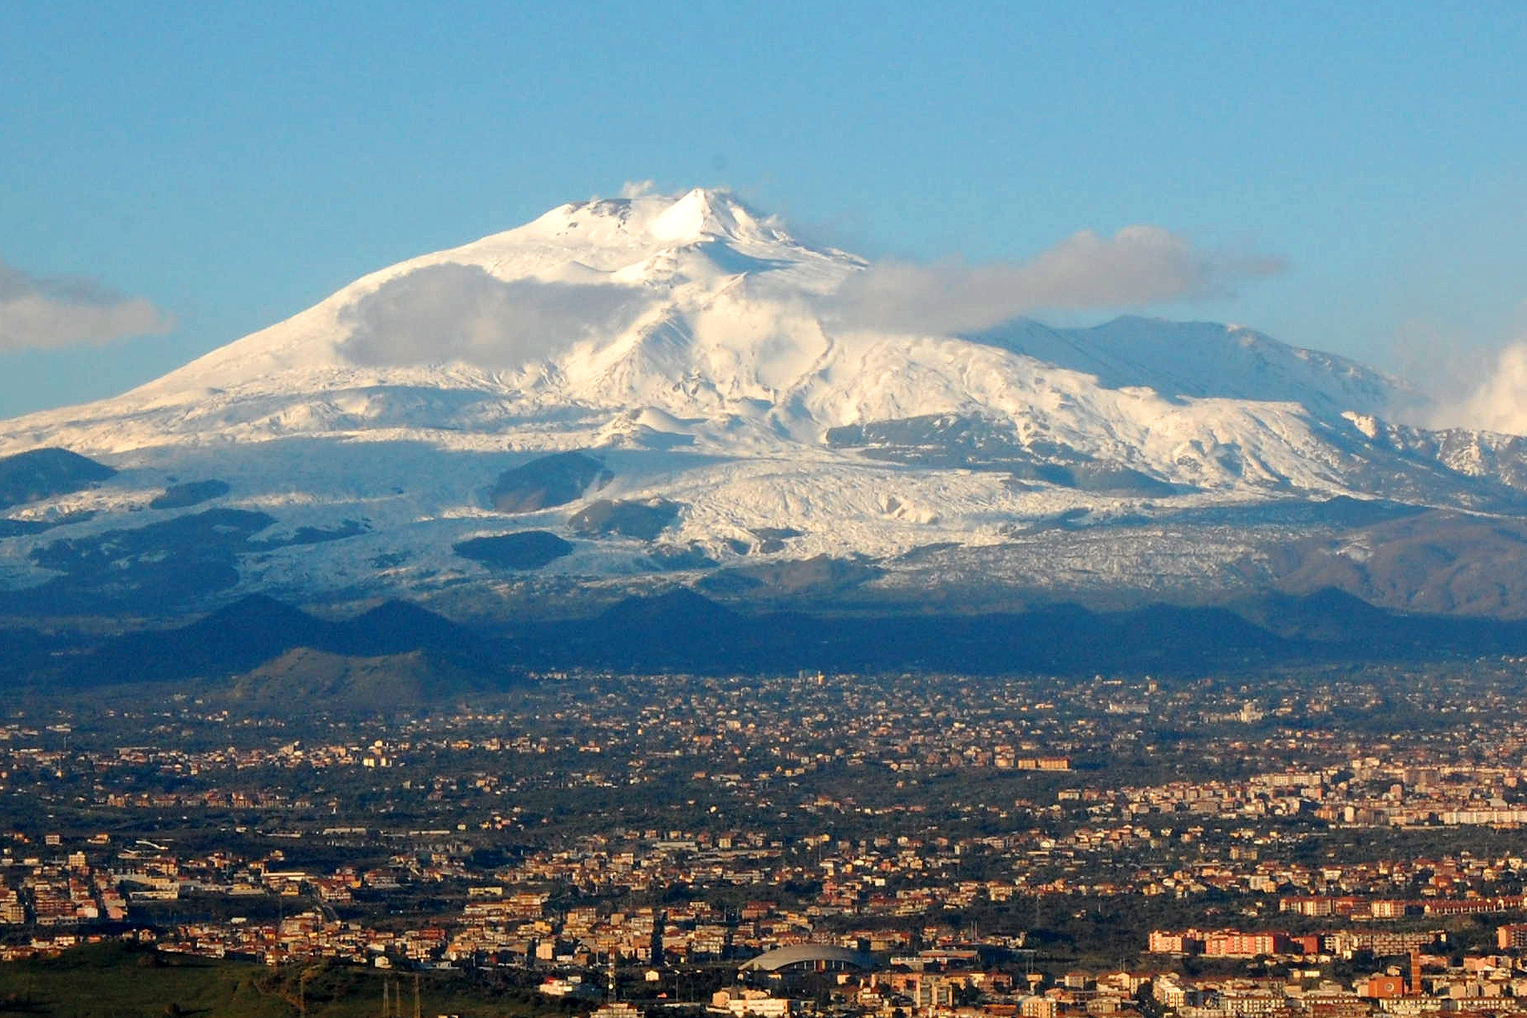 Mt. Etna looming over Catania